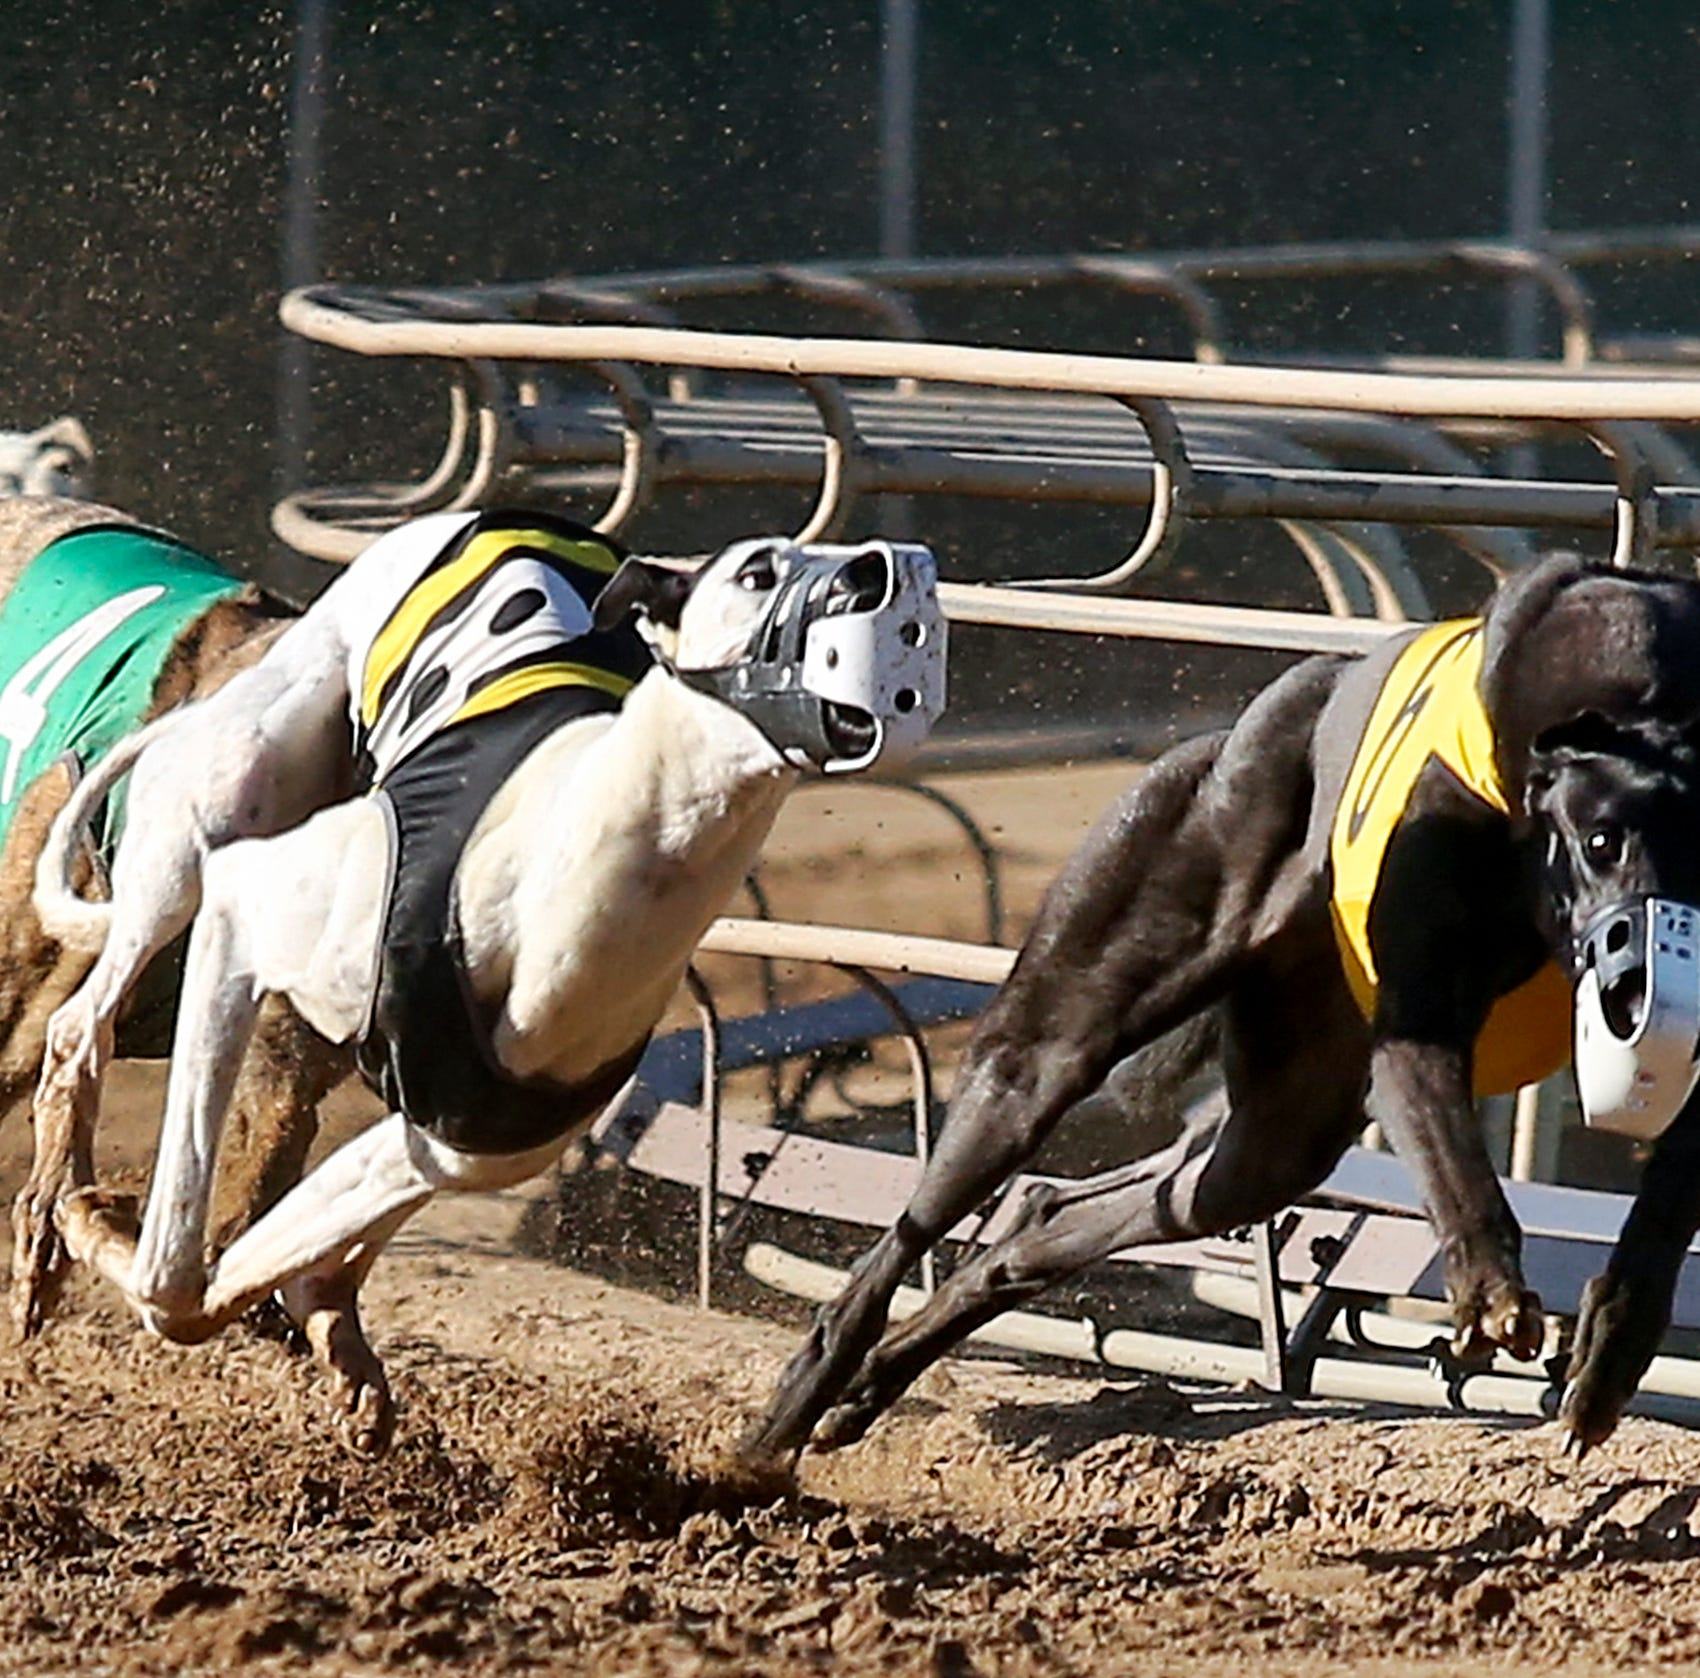 Greyhound racing is illegal in China. So why were the dogs of Iowa's top breeders being sold there?